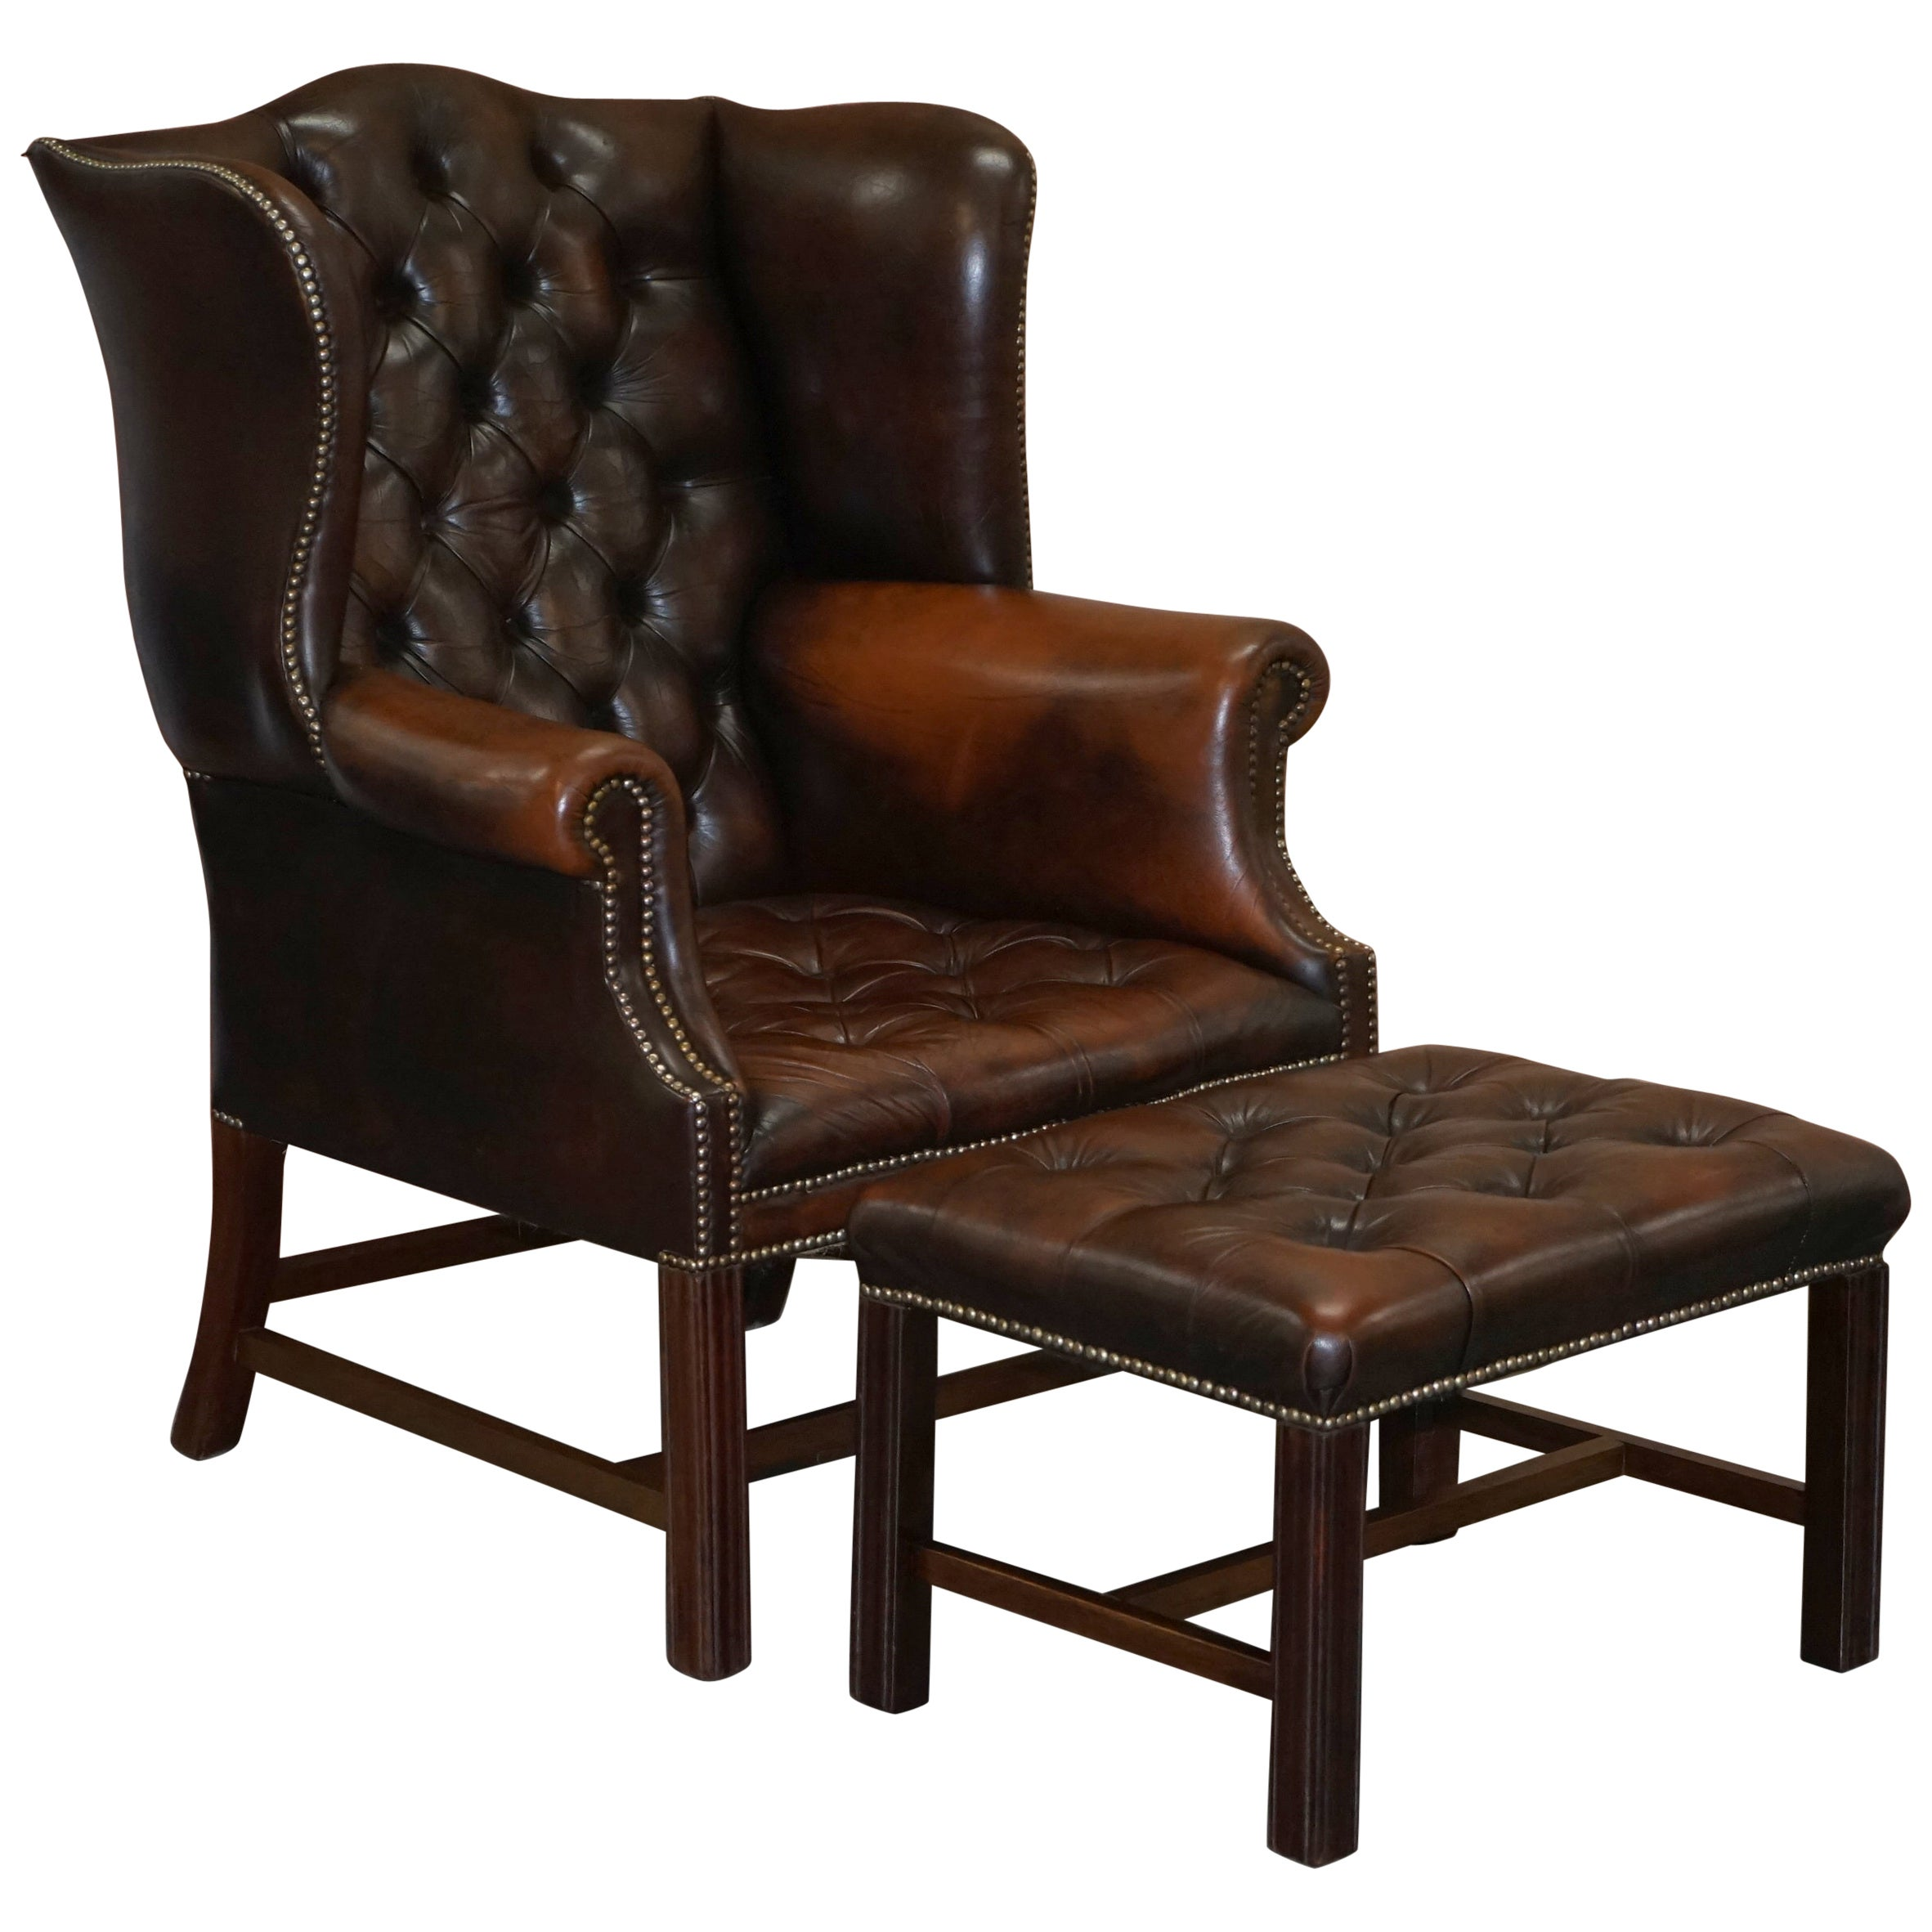 Chesterfield Brown Leather Wingback Georgian H-Framed Armchair and Footstool